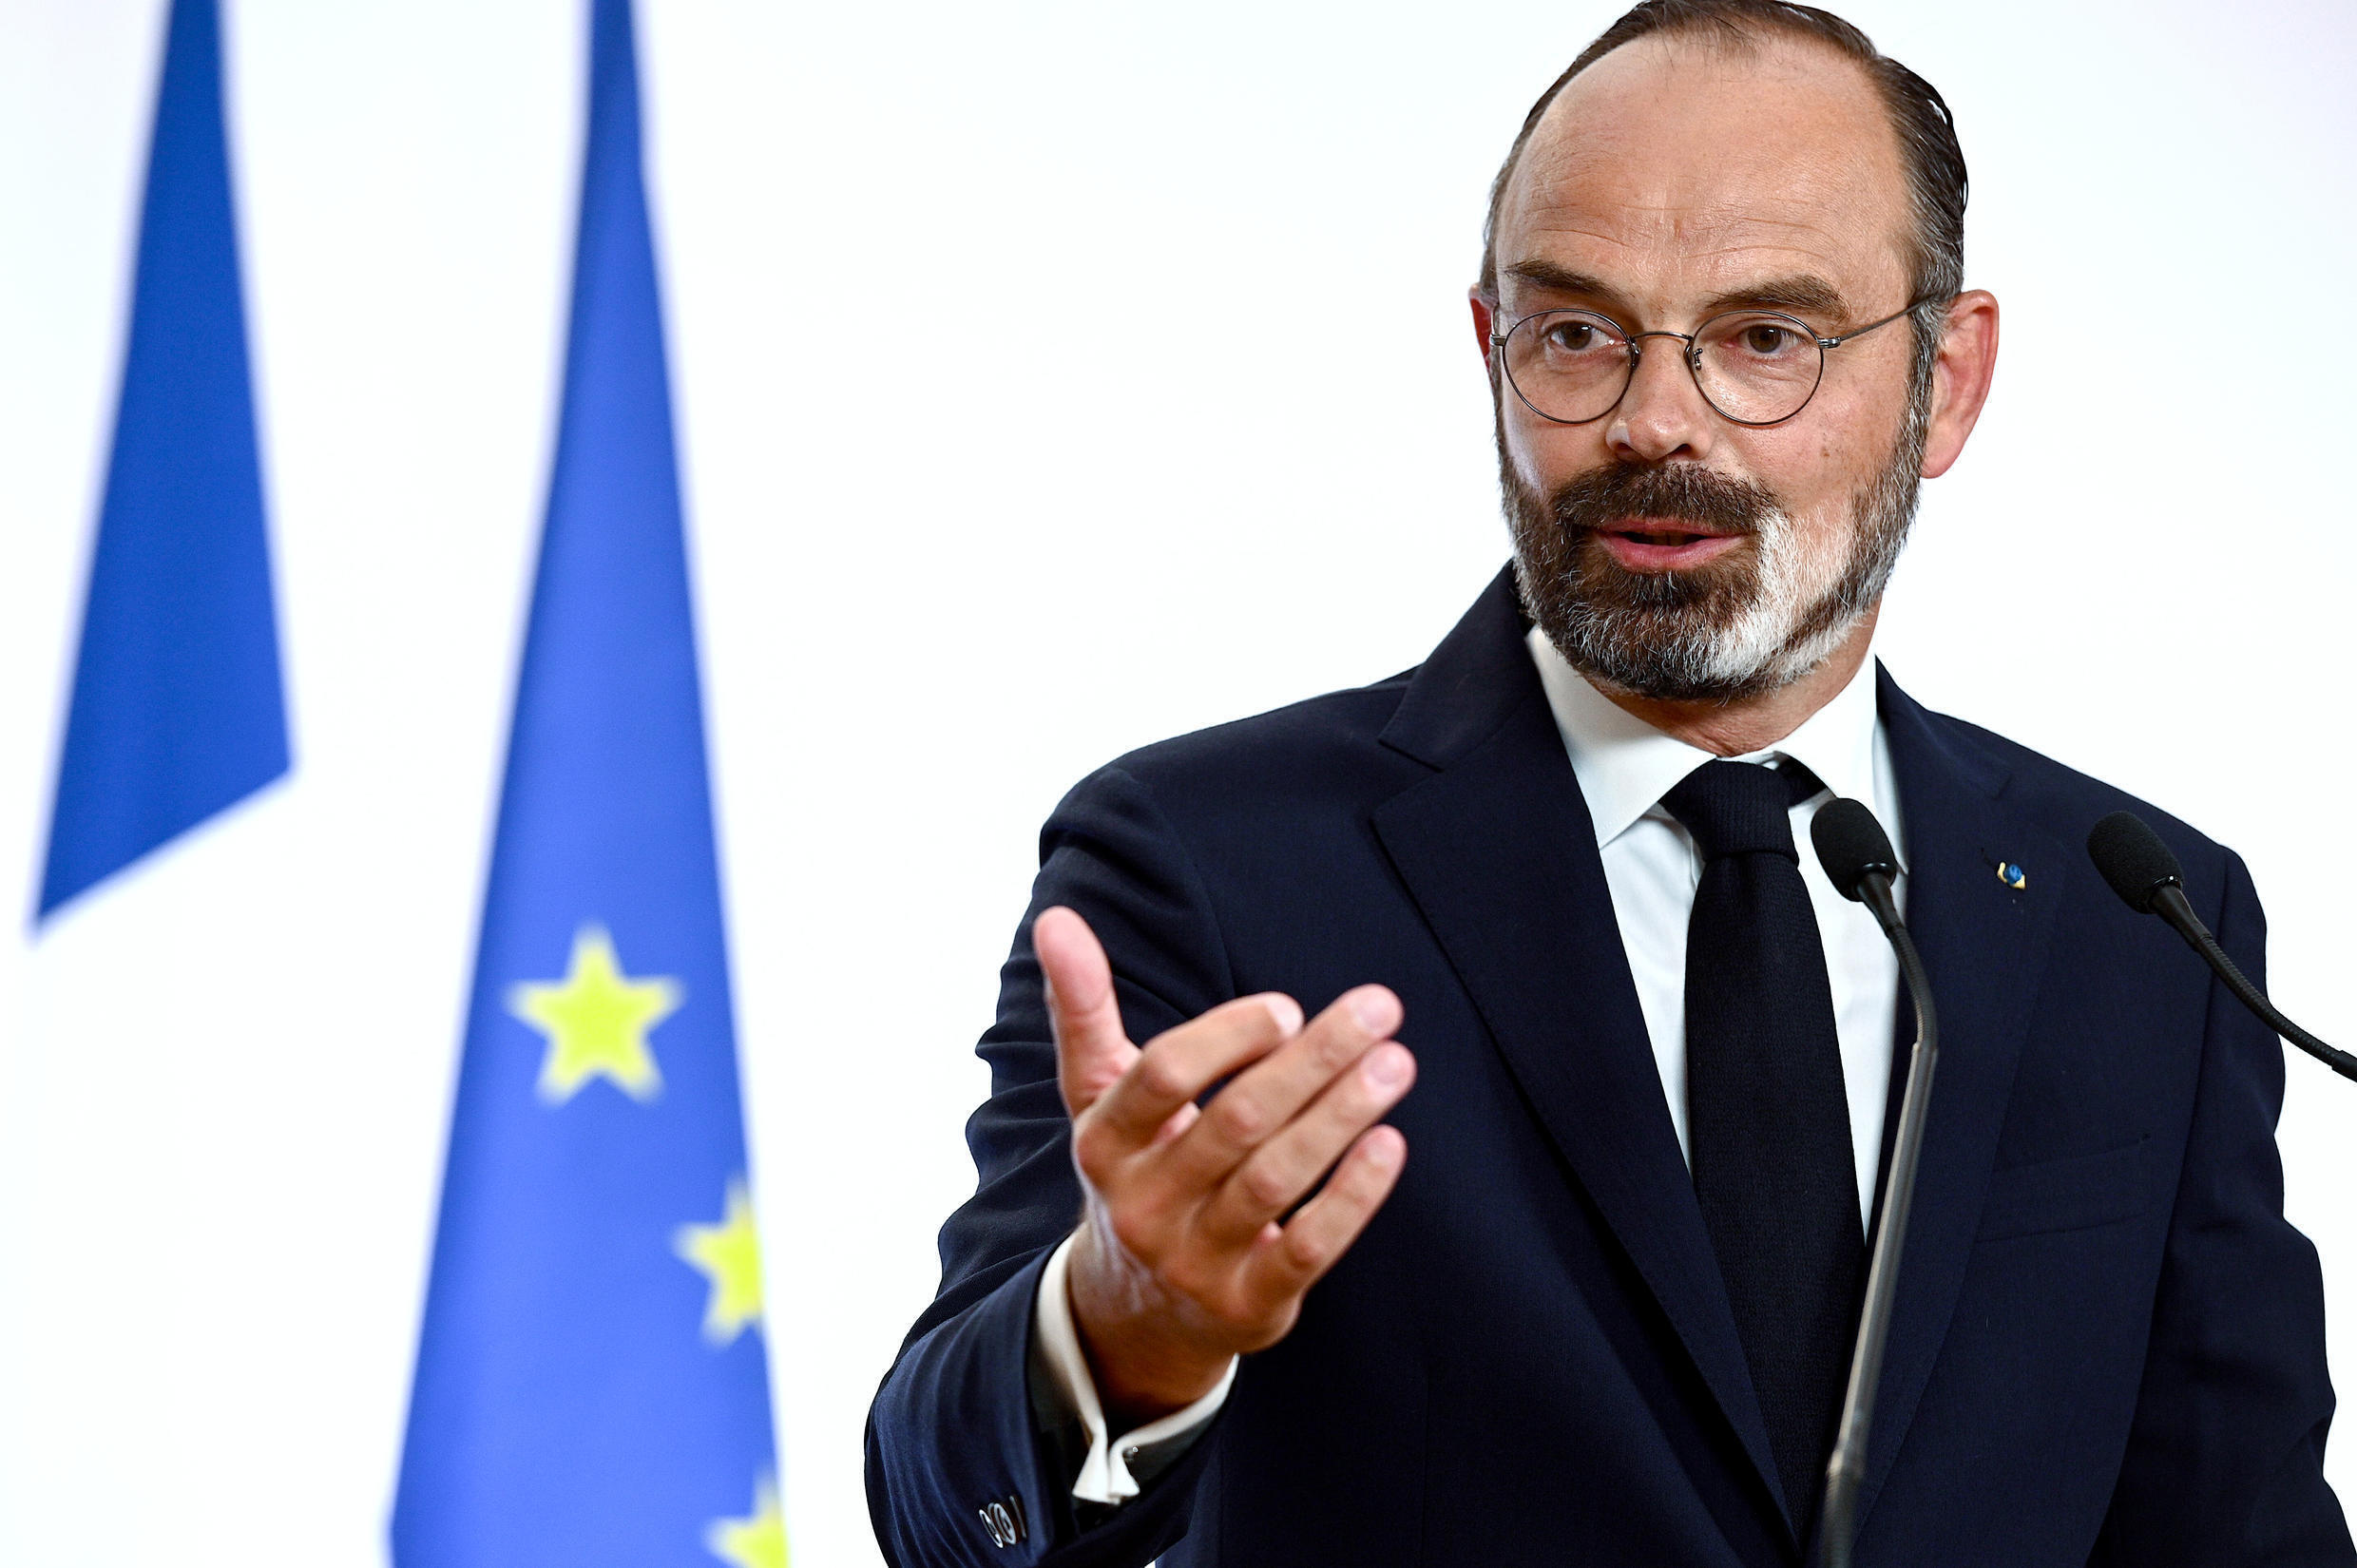 French Prime Minister Edouard Philippe, 28 May 2020 at a press conference in Paris.